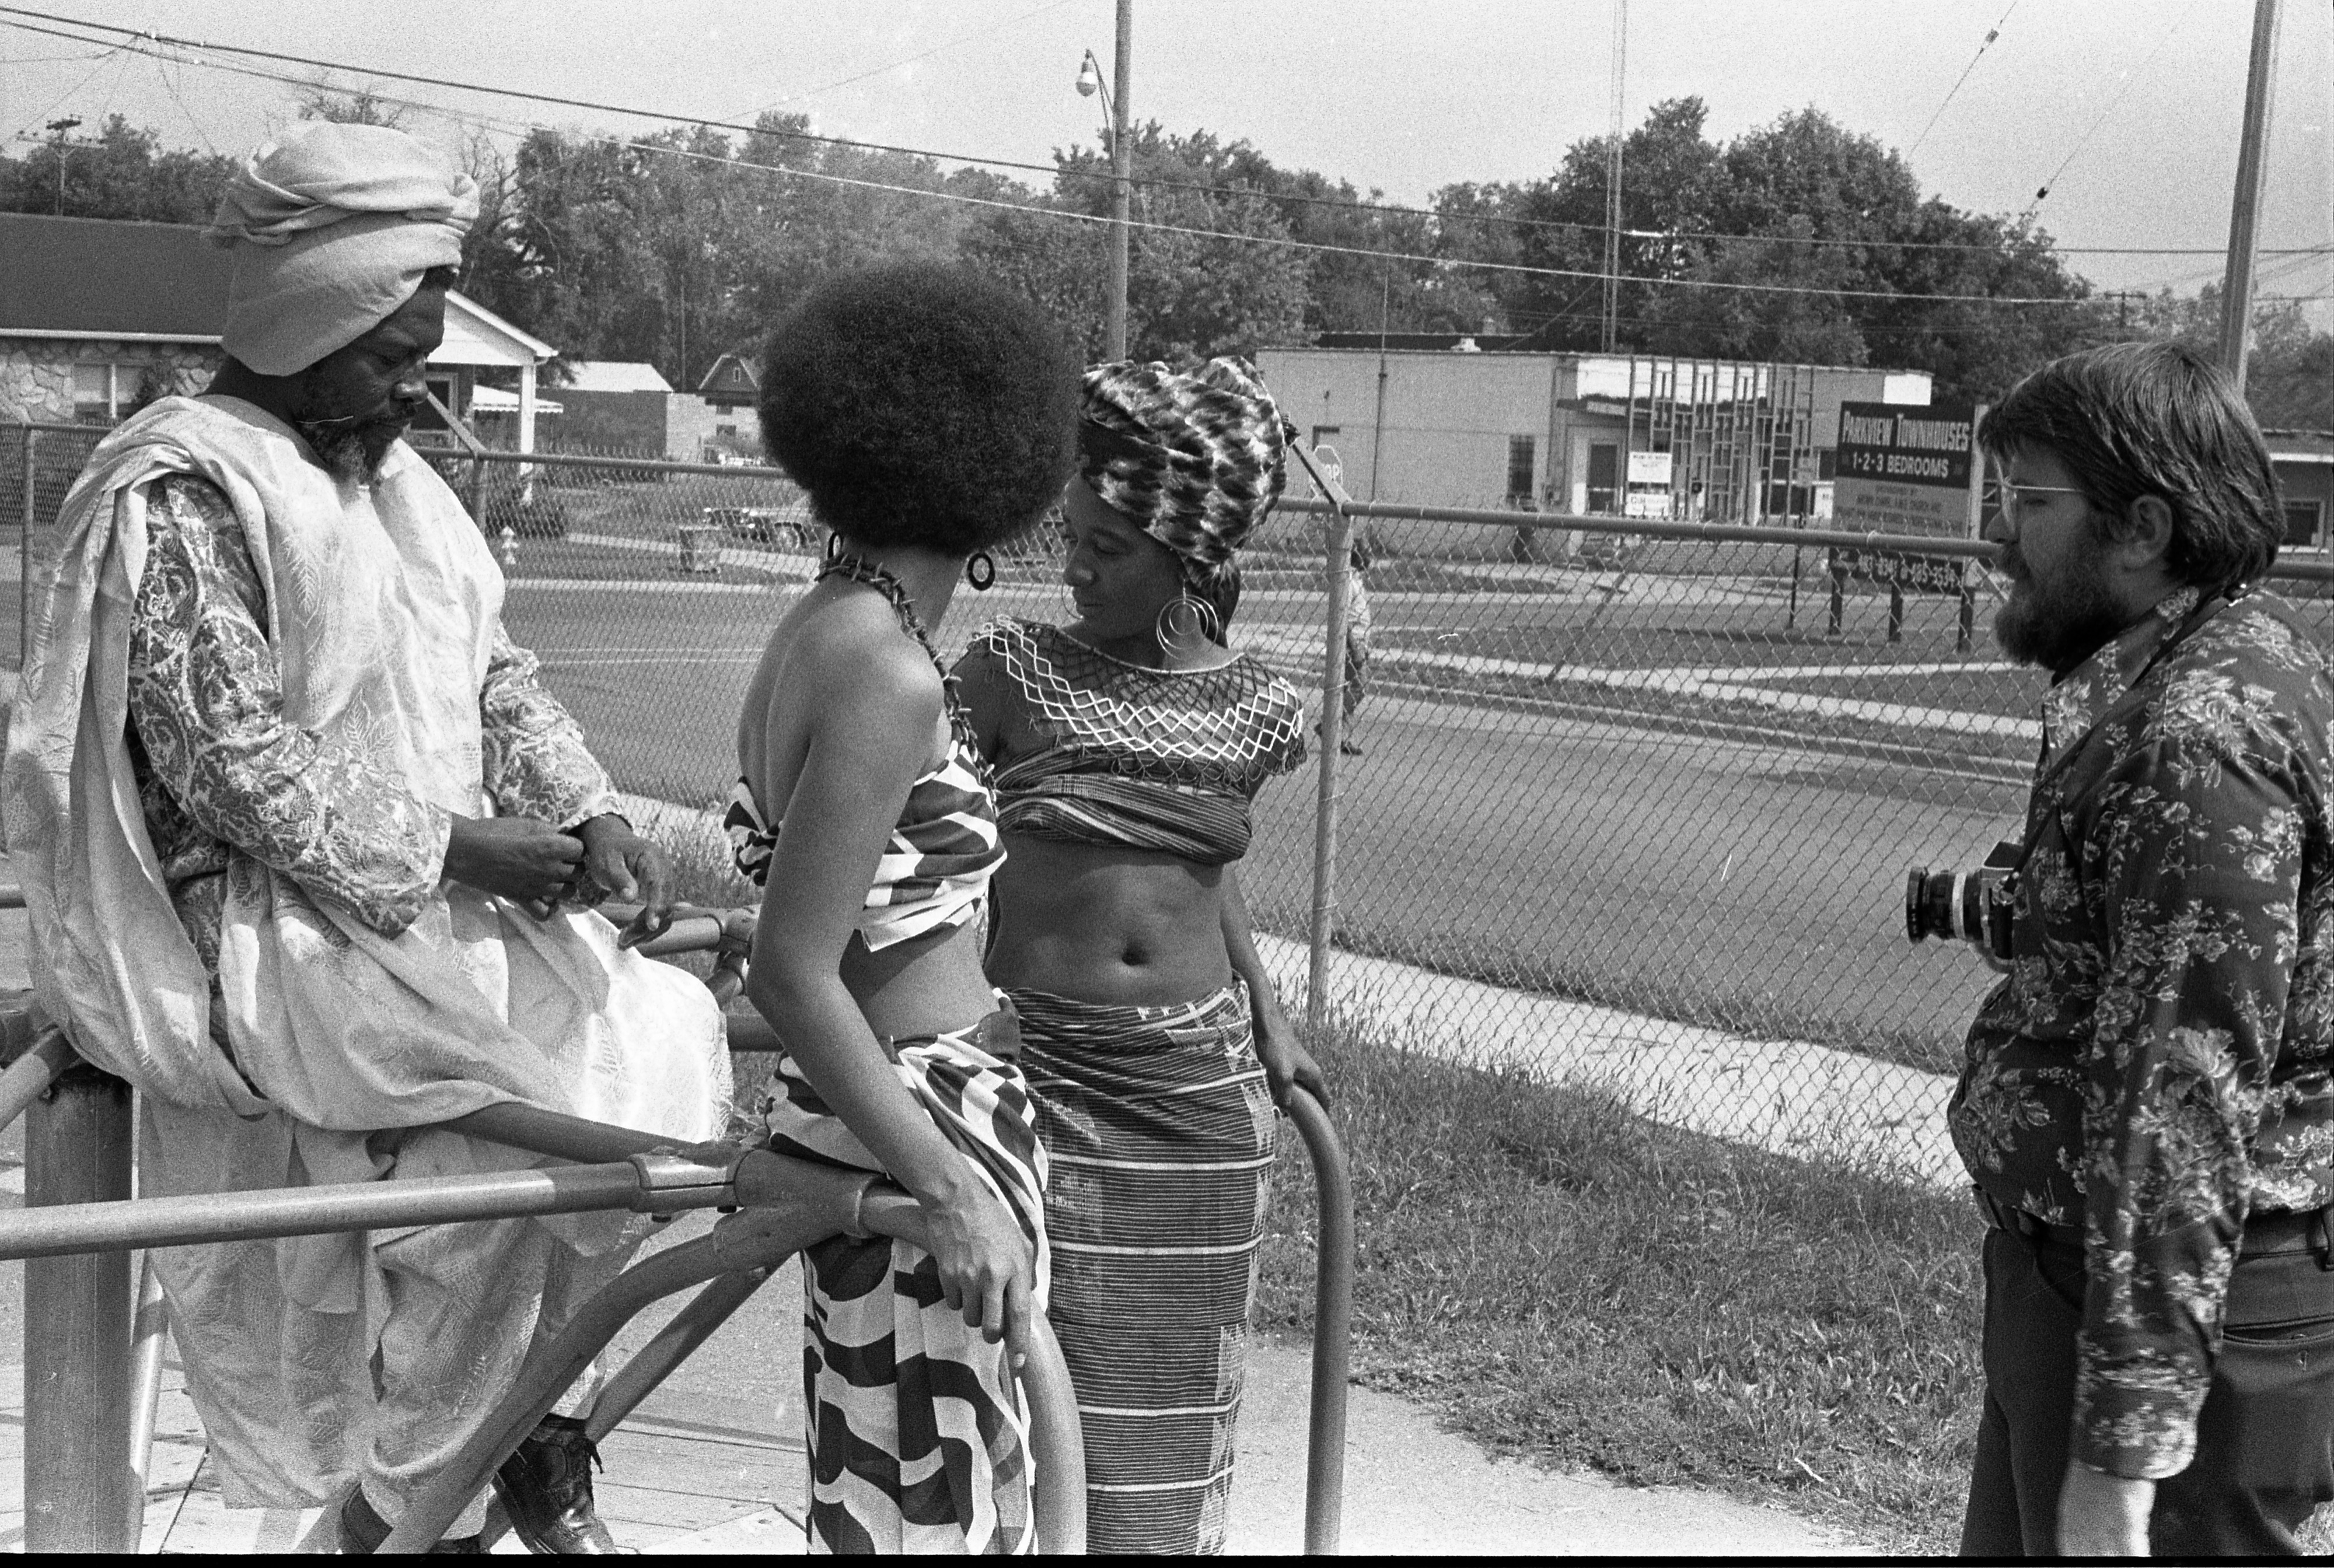 Black Arts Fair Models In Costume With Photographer, September 1972 image